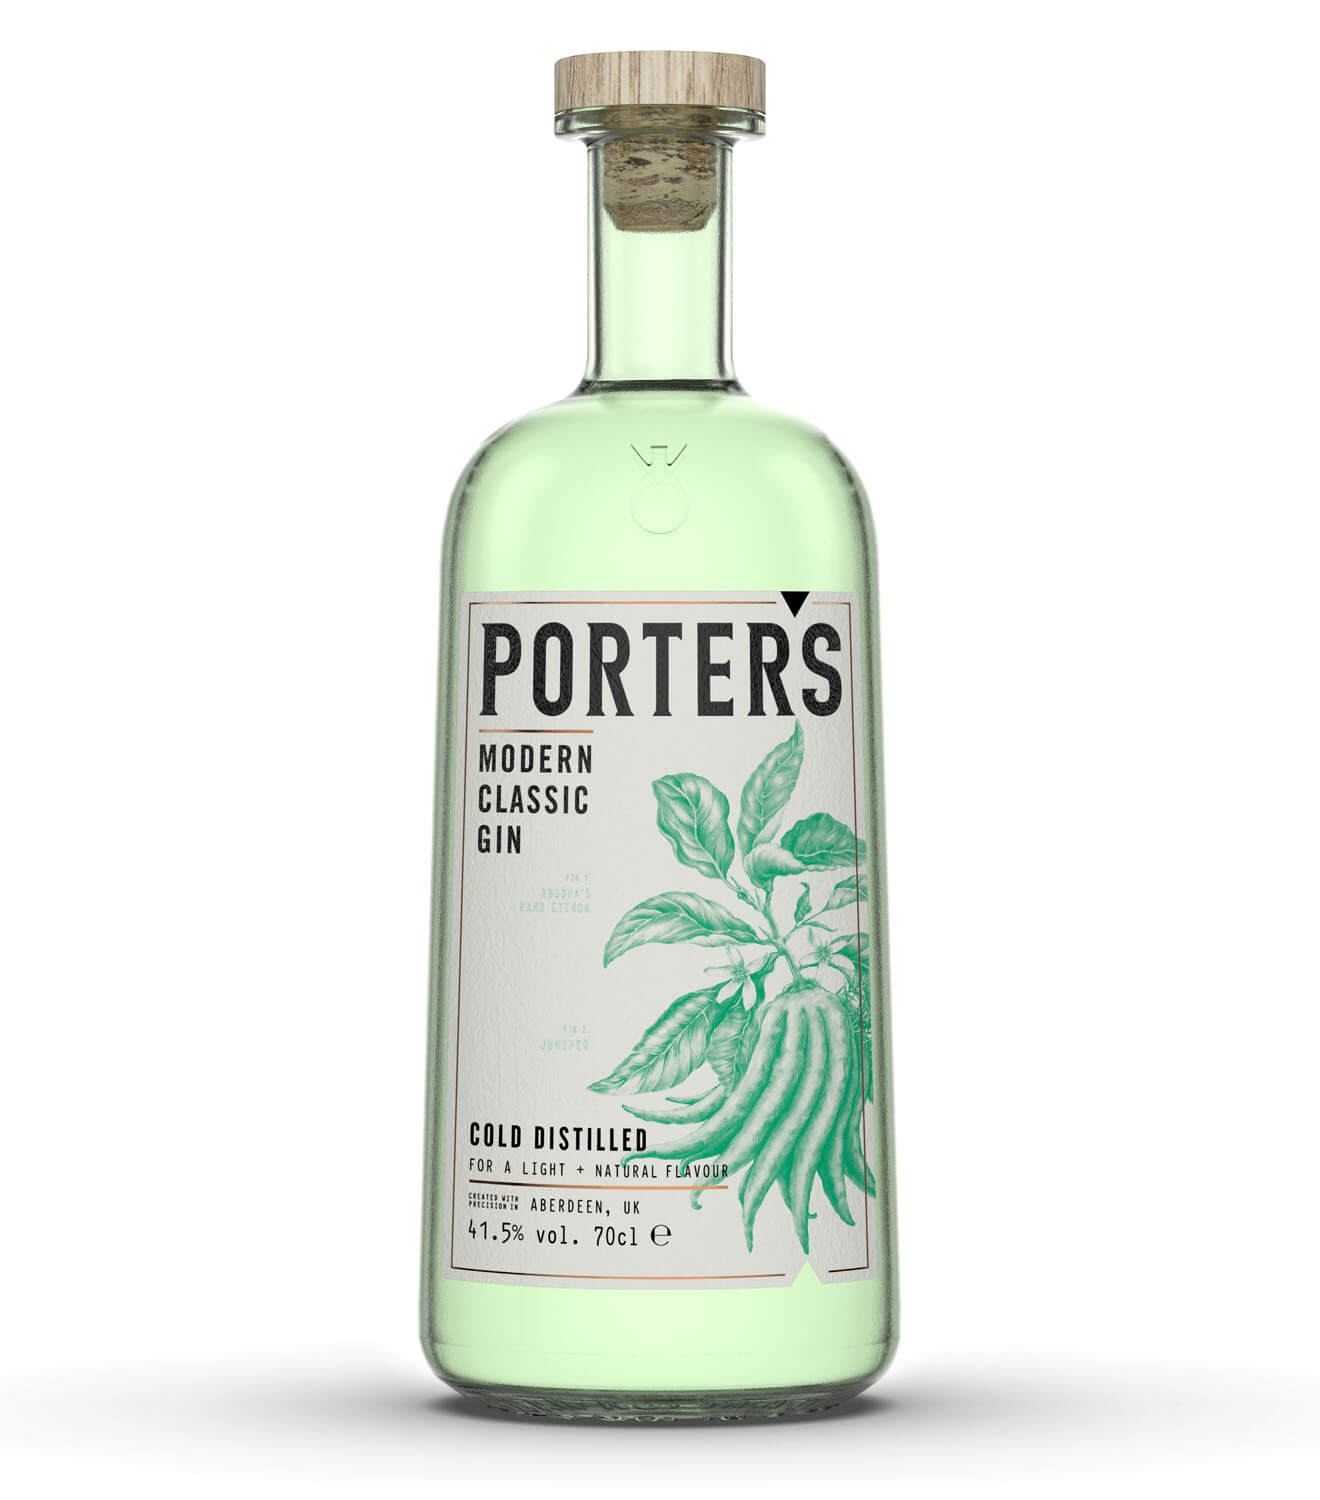 Porter's Gin Classic, bottle on white